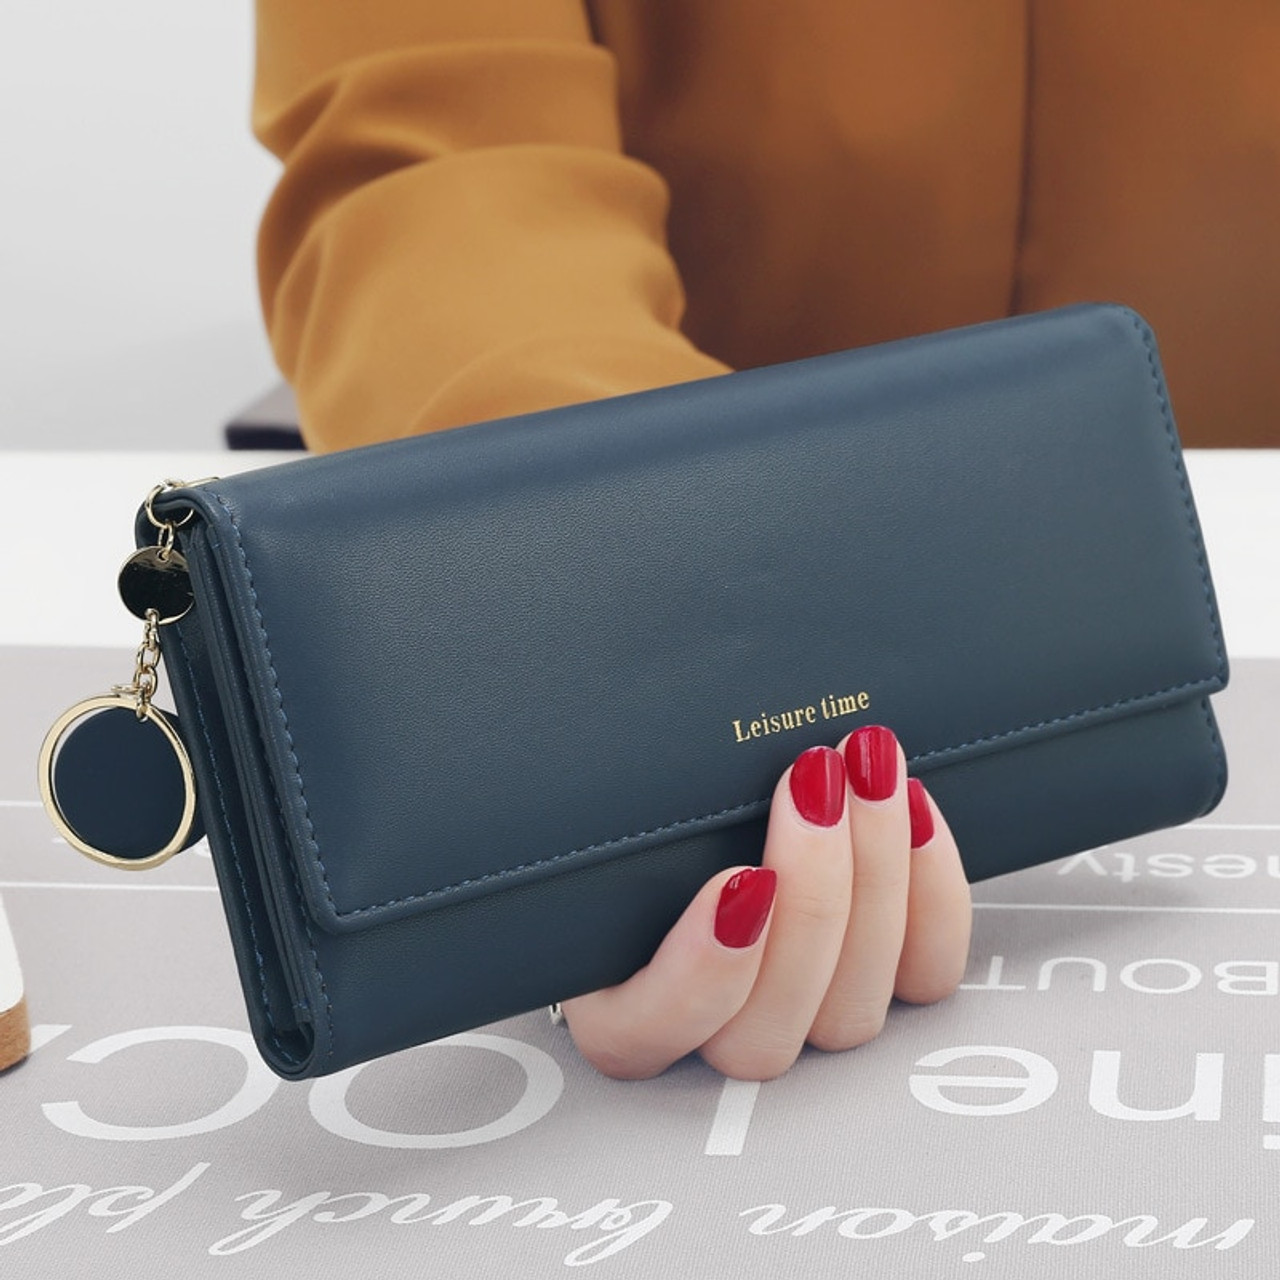 748552f6495bde ... Luxury Brand Wallets Women Leather Wallets Female Long Coin Purses  Ladies Money Credit Card Holders Large ...